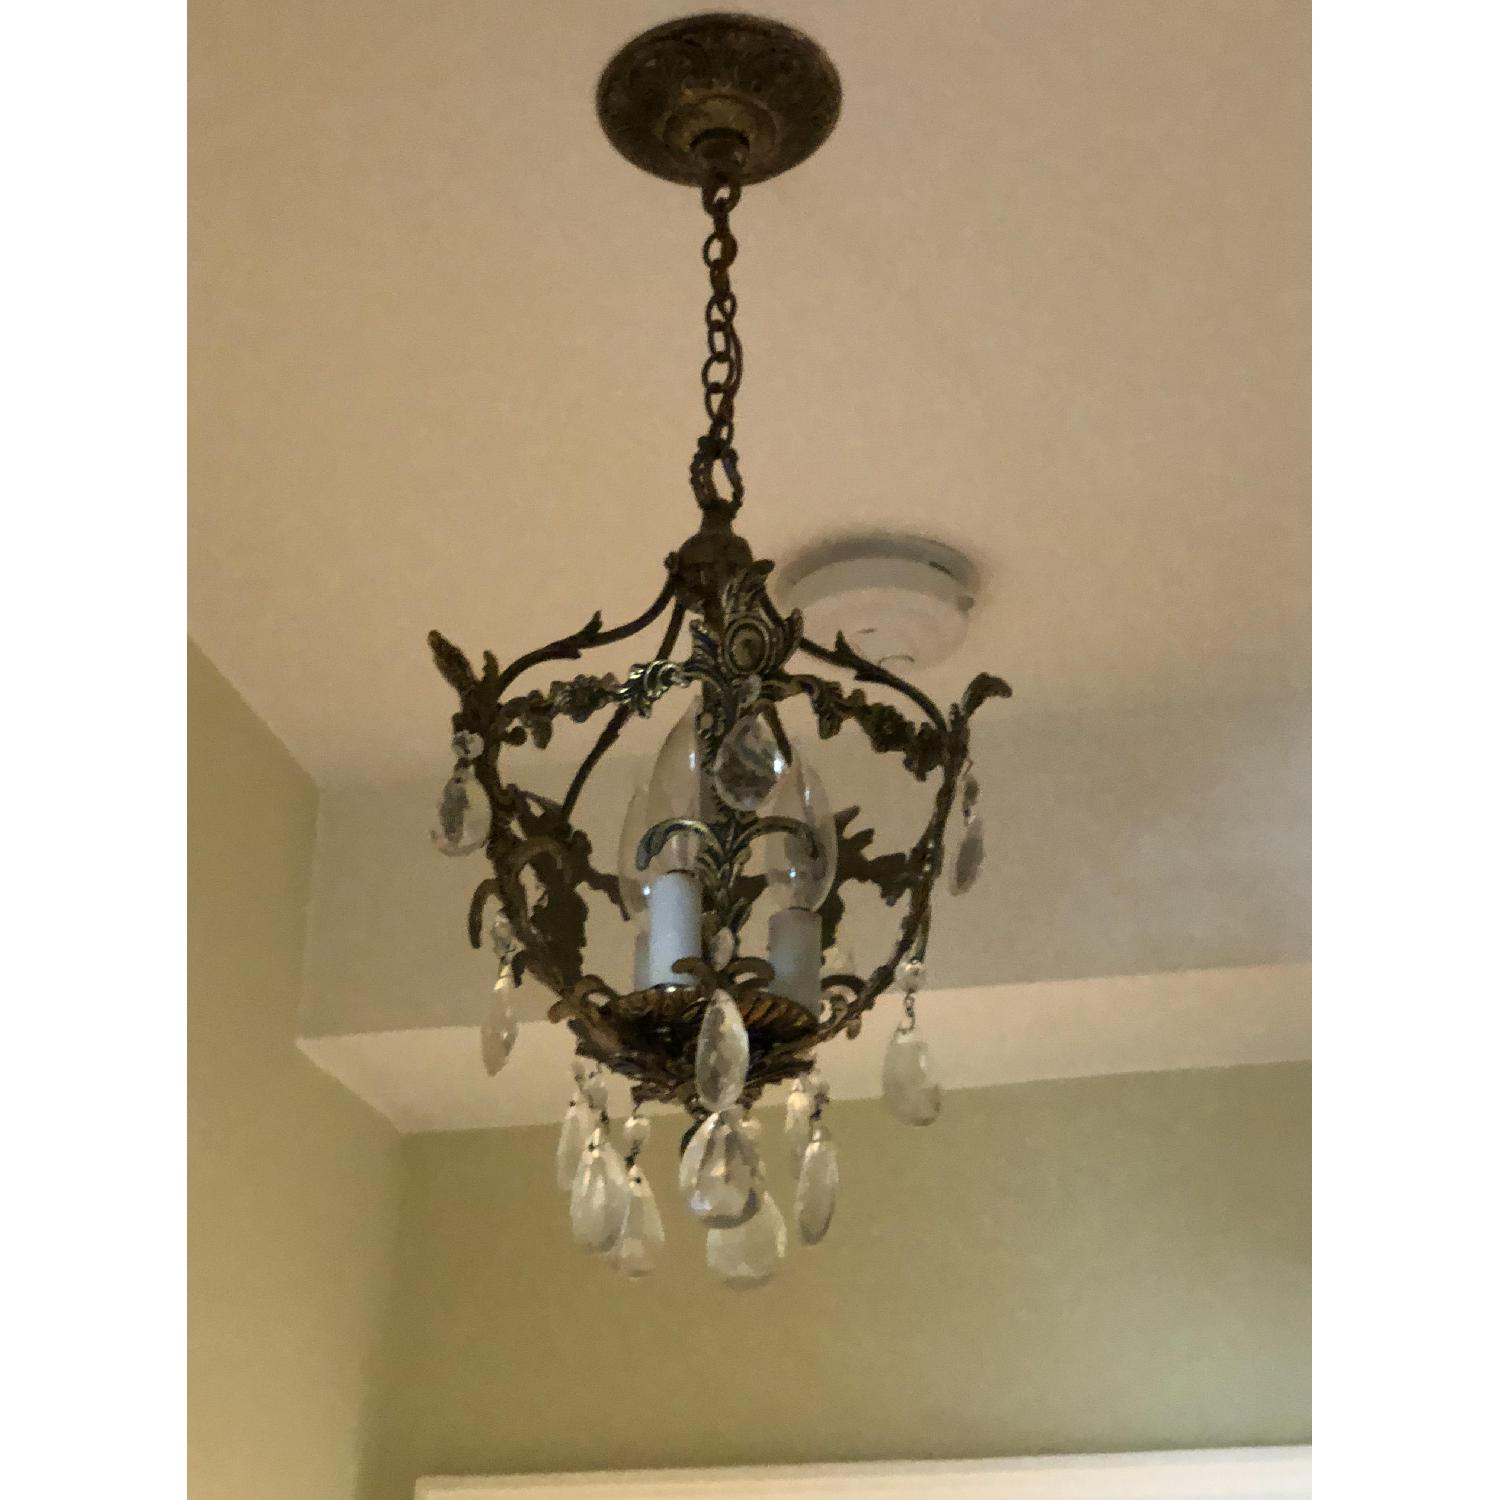 3-Light Candle Style Brass Light Fixture w/ Crystal Accents